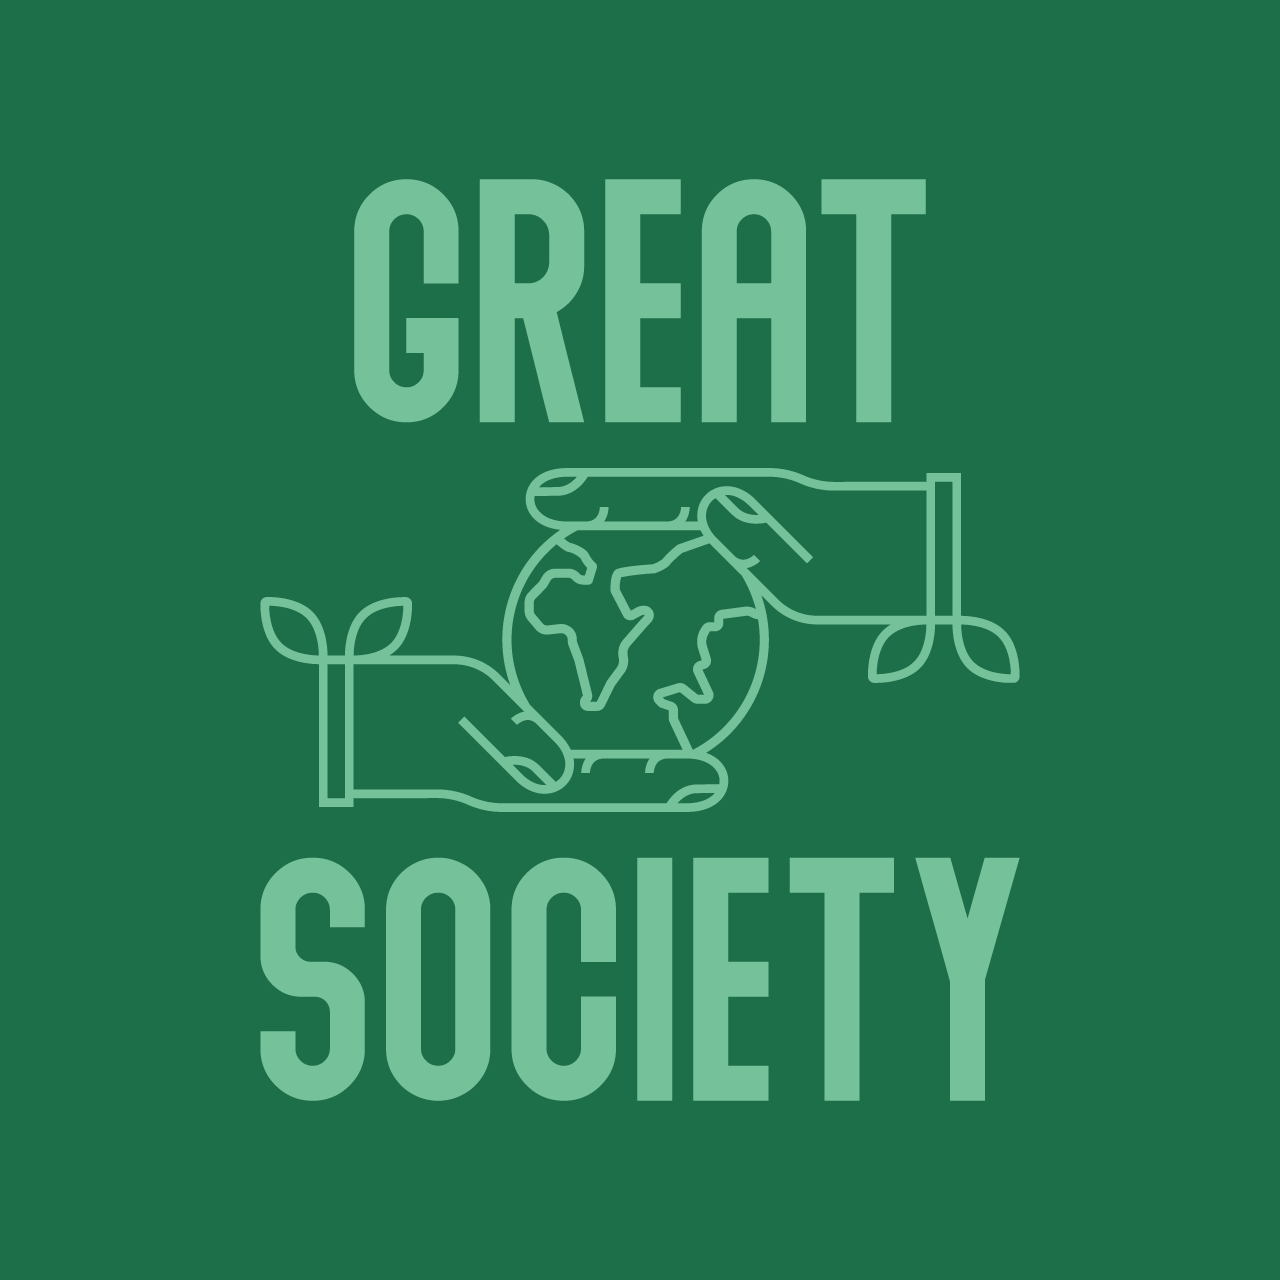 The Great Society - Host: Constance DykhuizenThe Great Society podcast explores the lives of nonprofit founders and leaders who have dedicated their lives to causes and issues bigger than themselves. LBJ's Great Society was a call for people to engage in eliminating poverty and racial injustice. What does this look like today, and who are the people making the change? Host Constance Dykhuizen — herself executive director of JP's Peace, Love and Happiness foundation — sits down to find out.Click HERE for the show's website